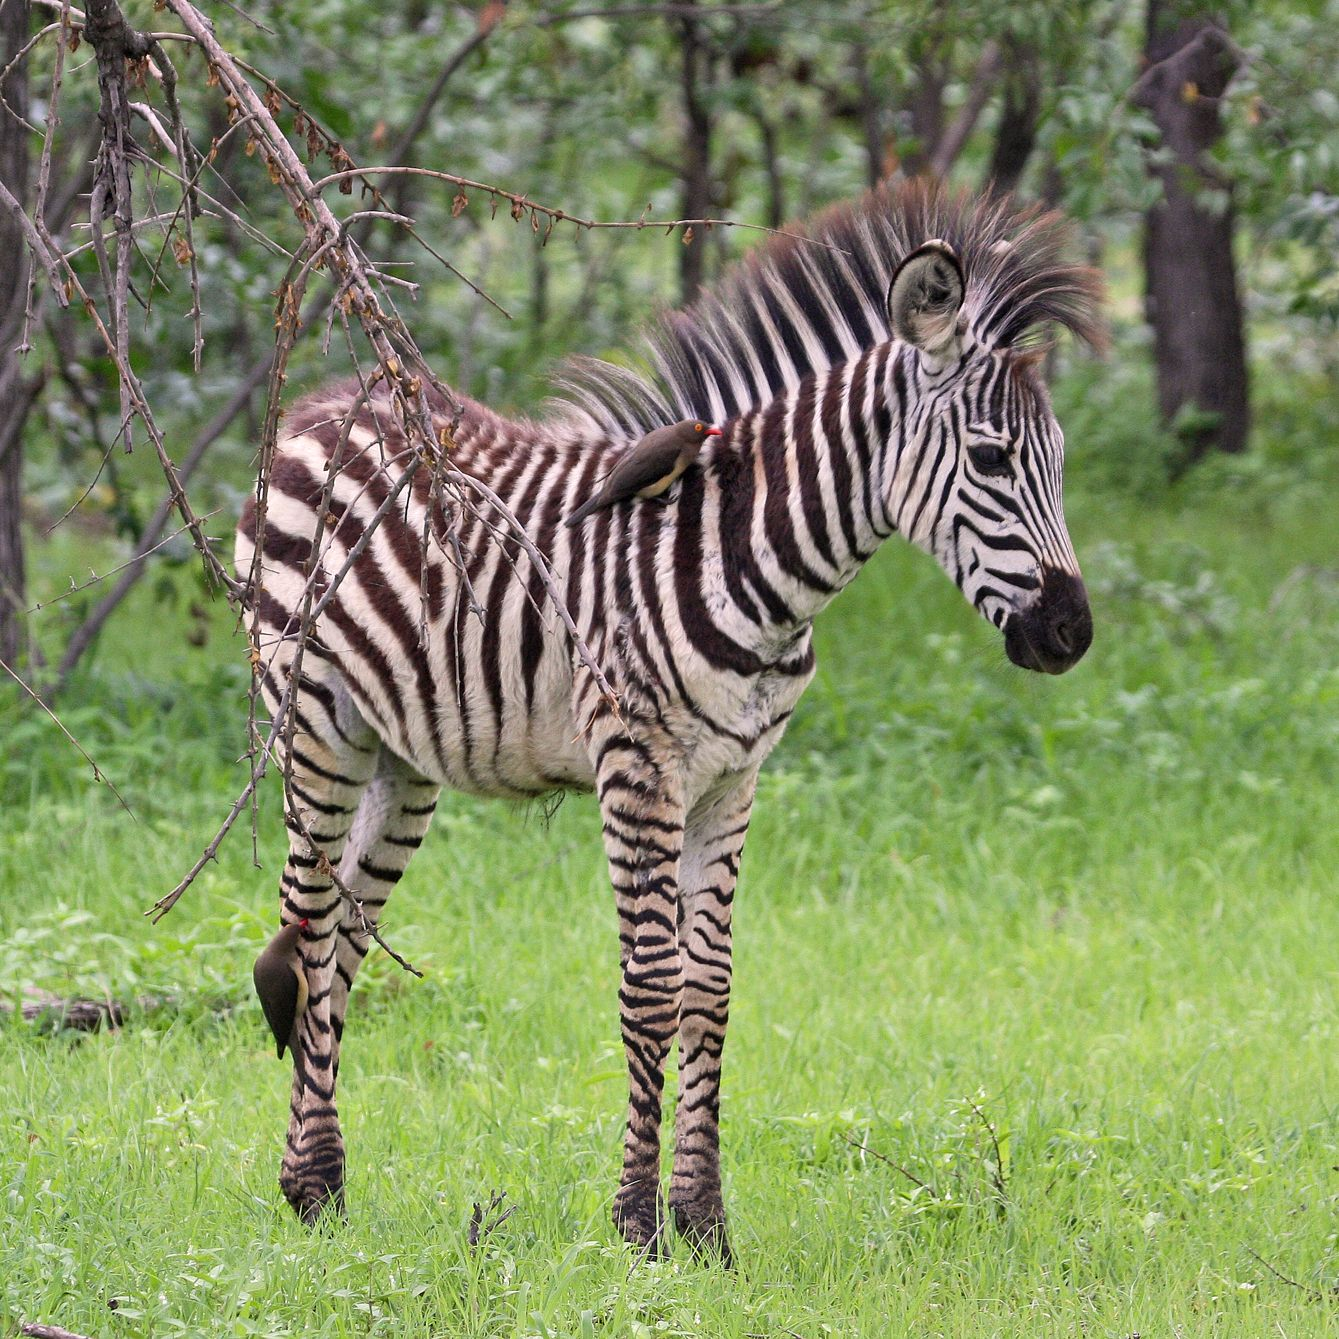 Http Lazyspleen Blogspot Com 2011 05 Things I Find Fascinating 3 Zebras And Html